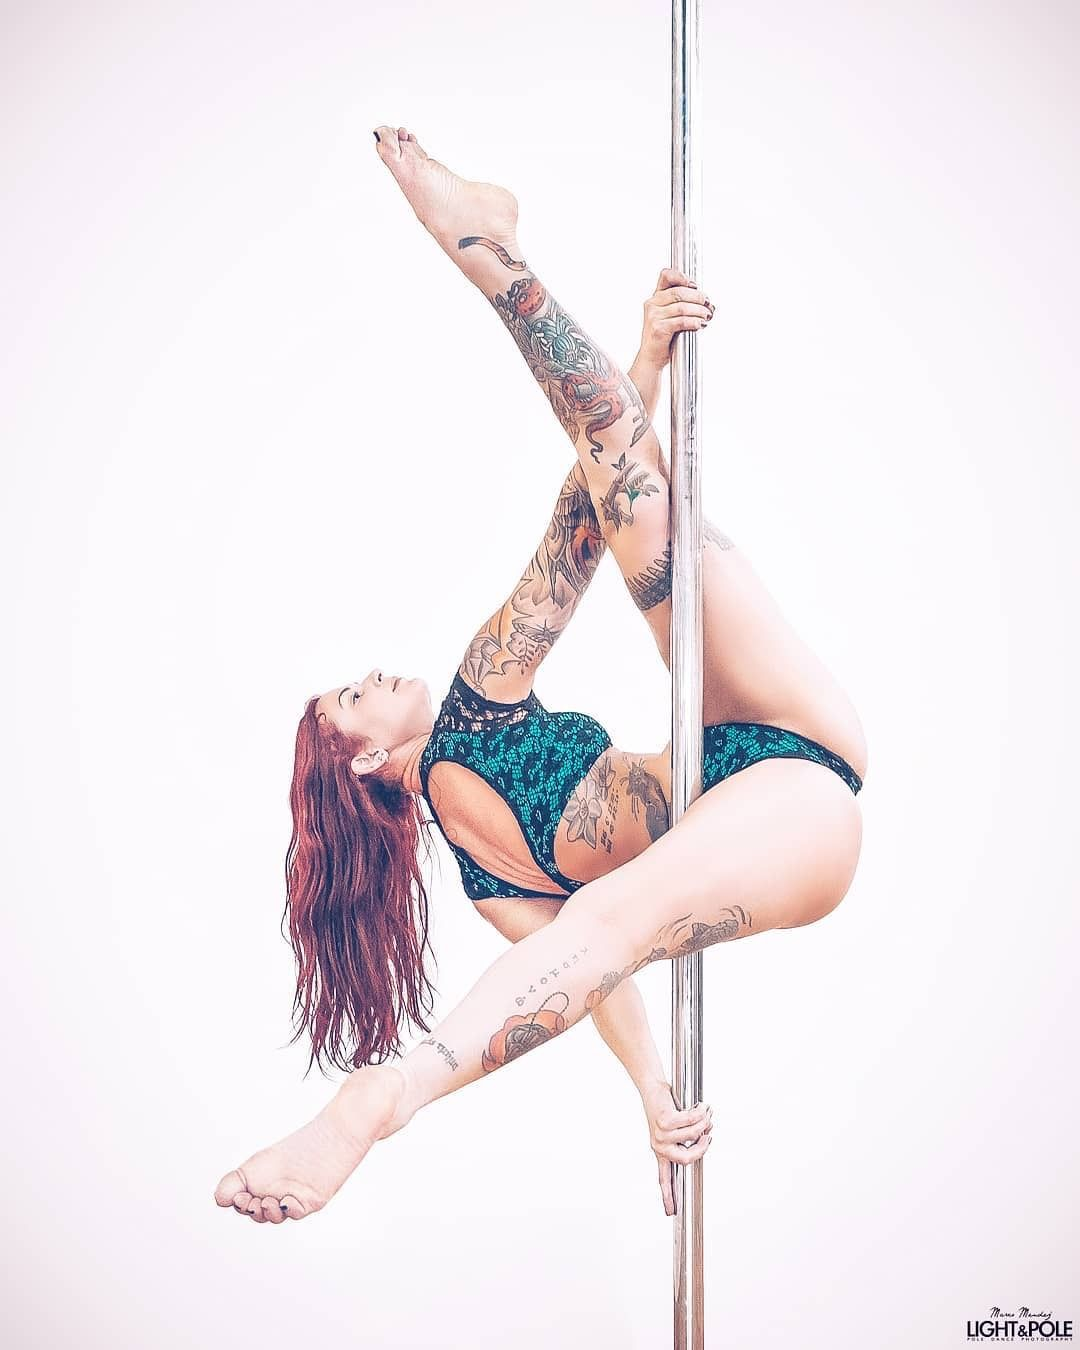 Pin By Horvath Eszter On Rudas Pole Dancing Pole Dancing Videos Pole Dance Moves